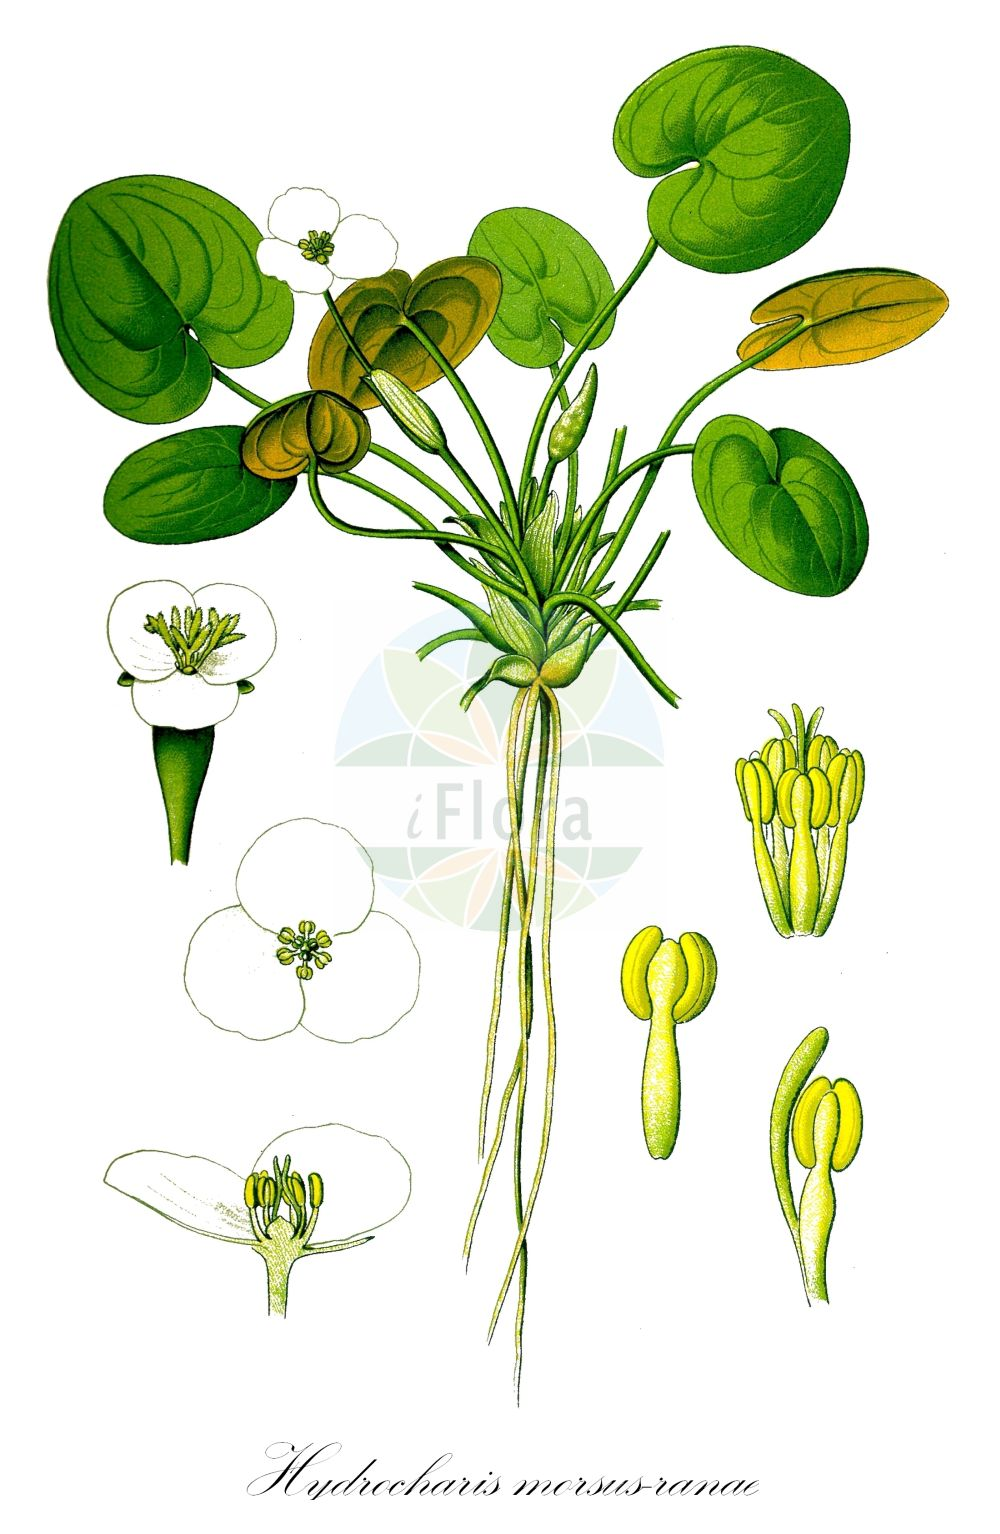 Historische Abbildung von Hydrocharis morsus-ranae (Europaeischer Froschbiss - Frogbit). Das Bild zeigt Blatt, Bluete, Frucht und Same. ---- Historical Drawing of Hydrocharis morsus-ranae (Europaeischer Froschbiss - Frogbit).The image is showing leaf, flower, fruit and seed.(Hydrocharis morsus-ranae,Europaeischer Froschbiss,Frogbit,Froschbiss,European Common ,Hydrocharis,Froschbiss,Frogbit,Hydrocharitaceae,Froschbissgewaechse,Frogbit family,Blatt,Bluete,Frucht,Same,leaf,flower,fruit,seed,Thomé (1885))